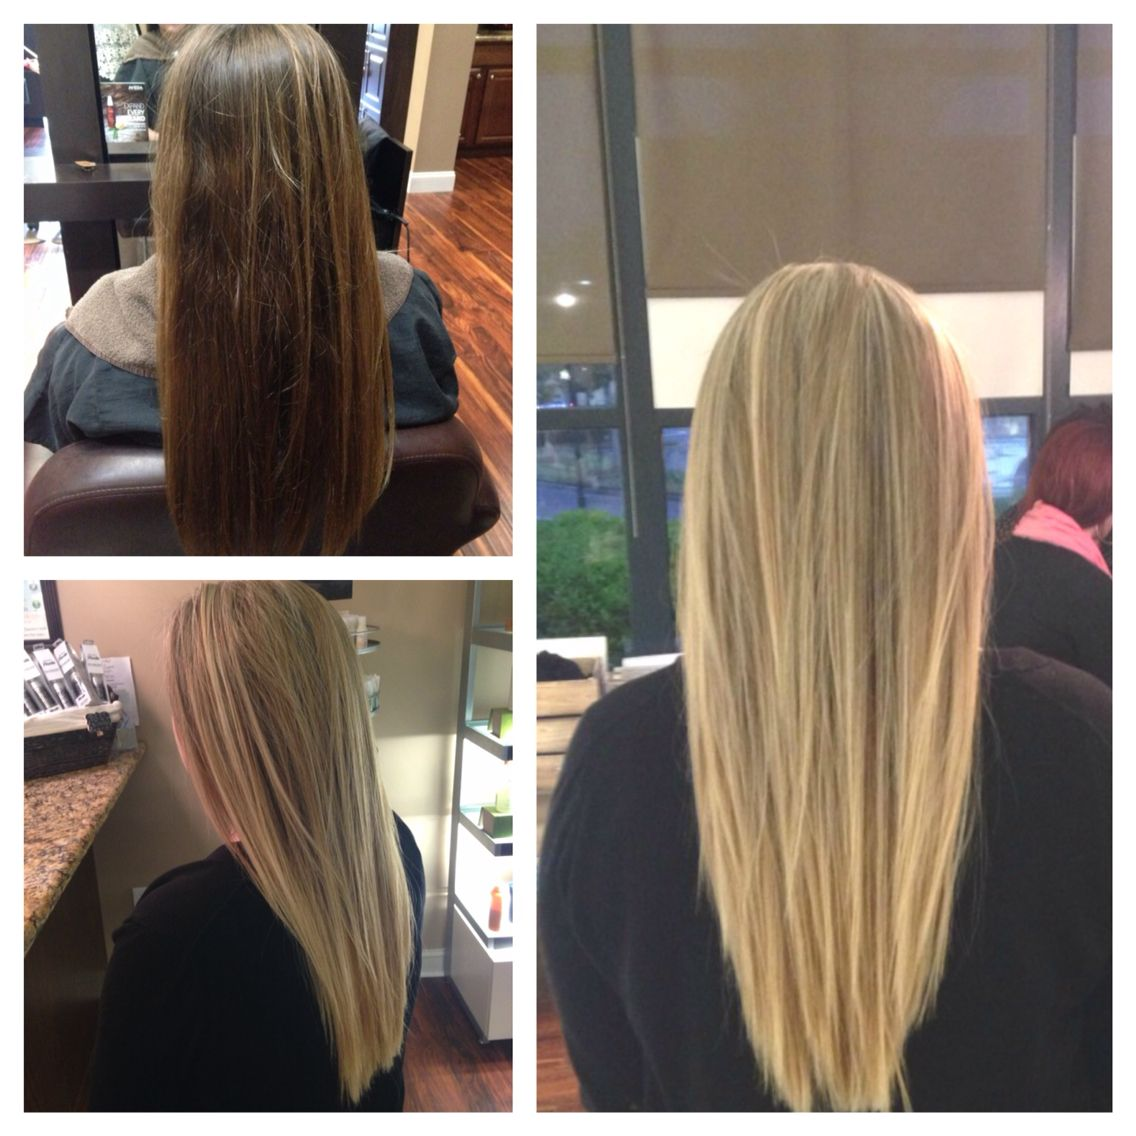 Before And After From Brown To Blonde With Aveda S New Blonde Finisher Brown Hair Dyed Blonde Brown Hair Dye Light Hair